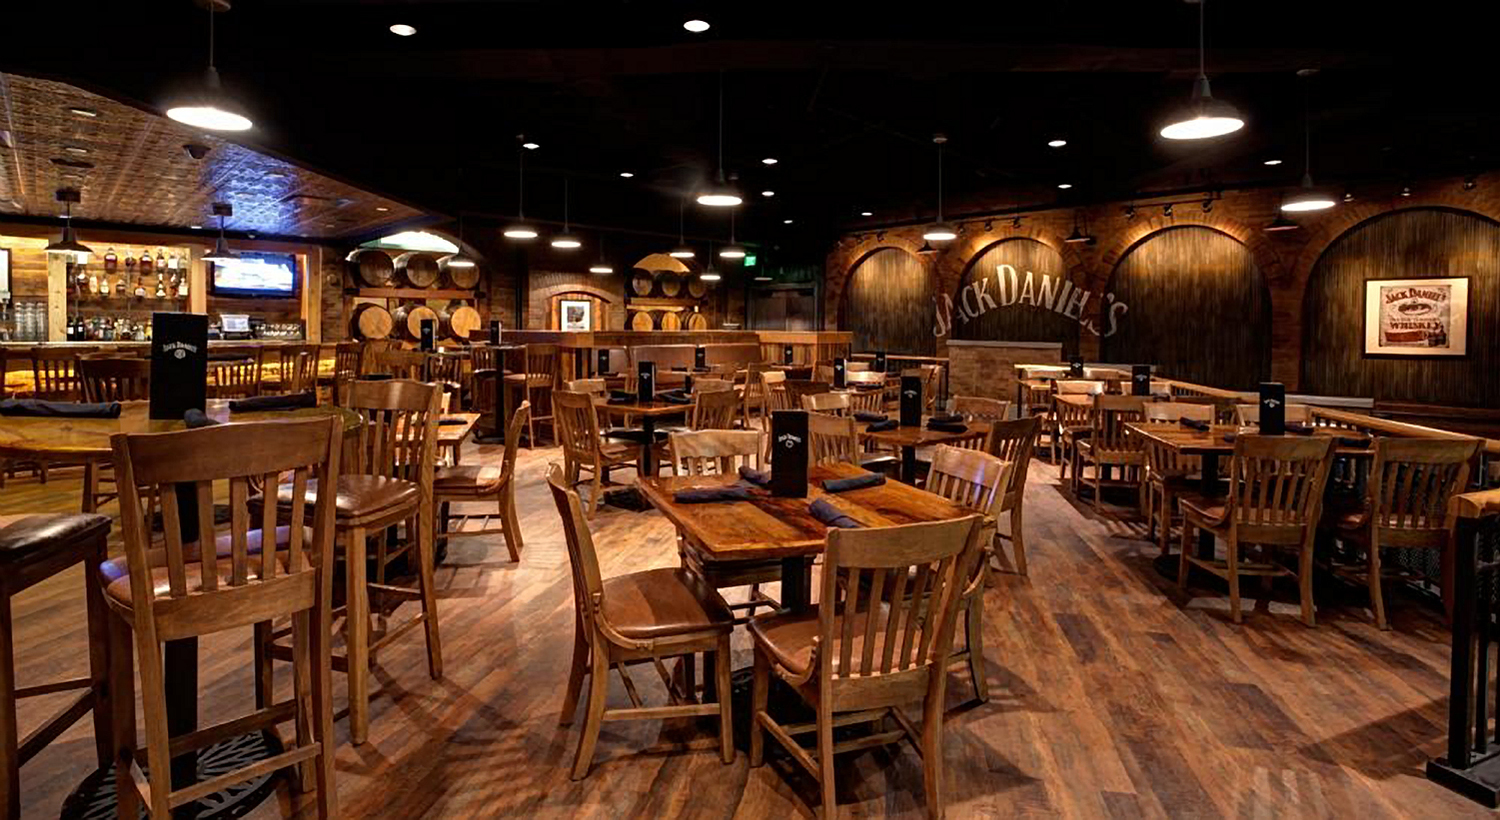 Jack Daniel S Saloon Lord Opryland Hotel And Convention Center D F Chase Inc Construction